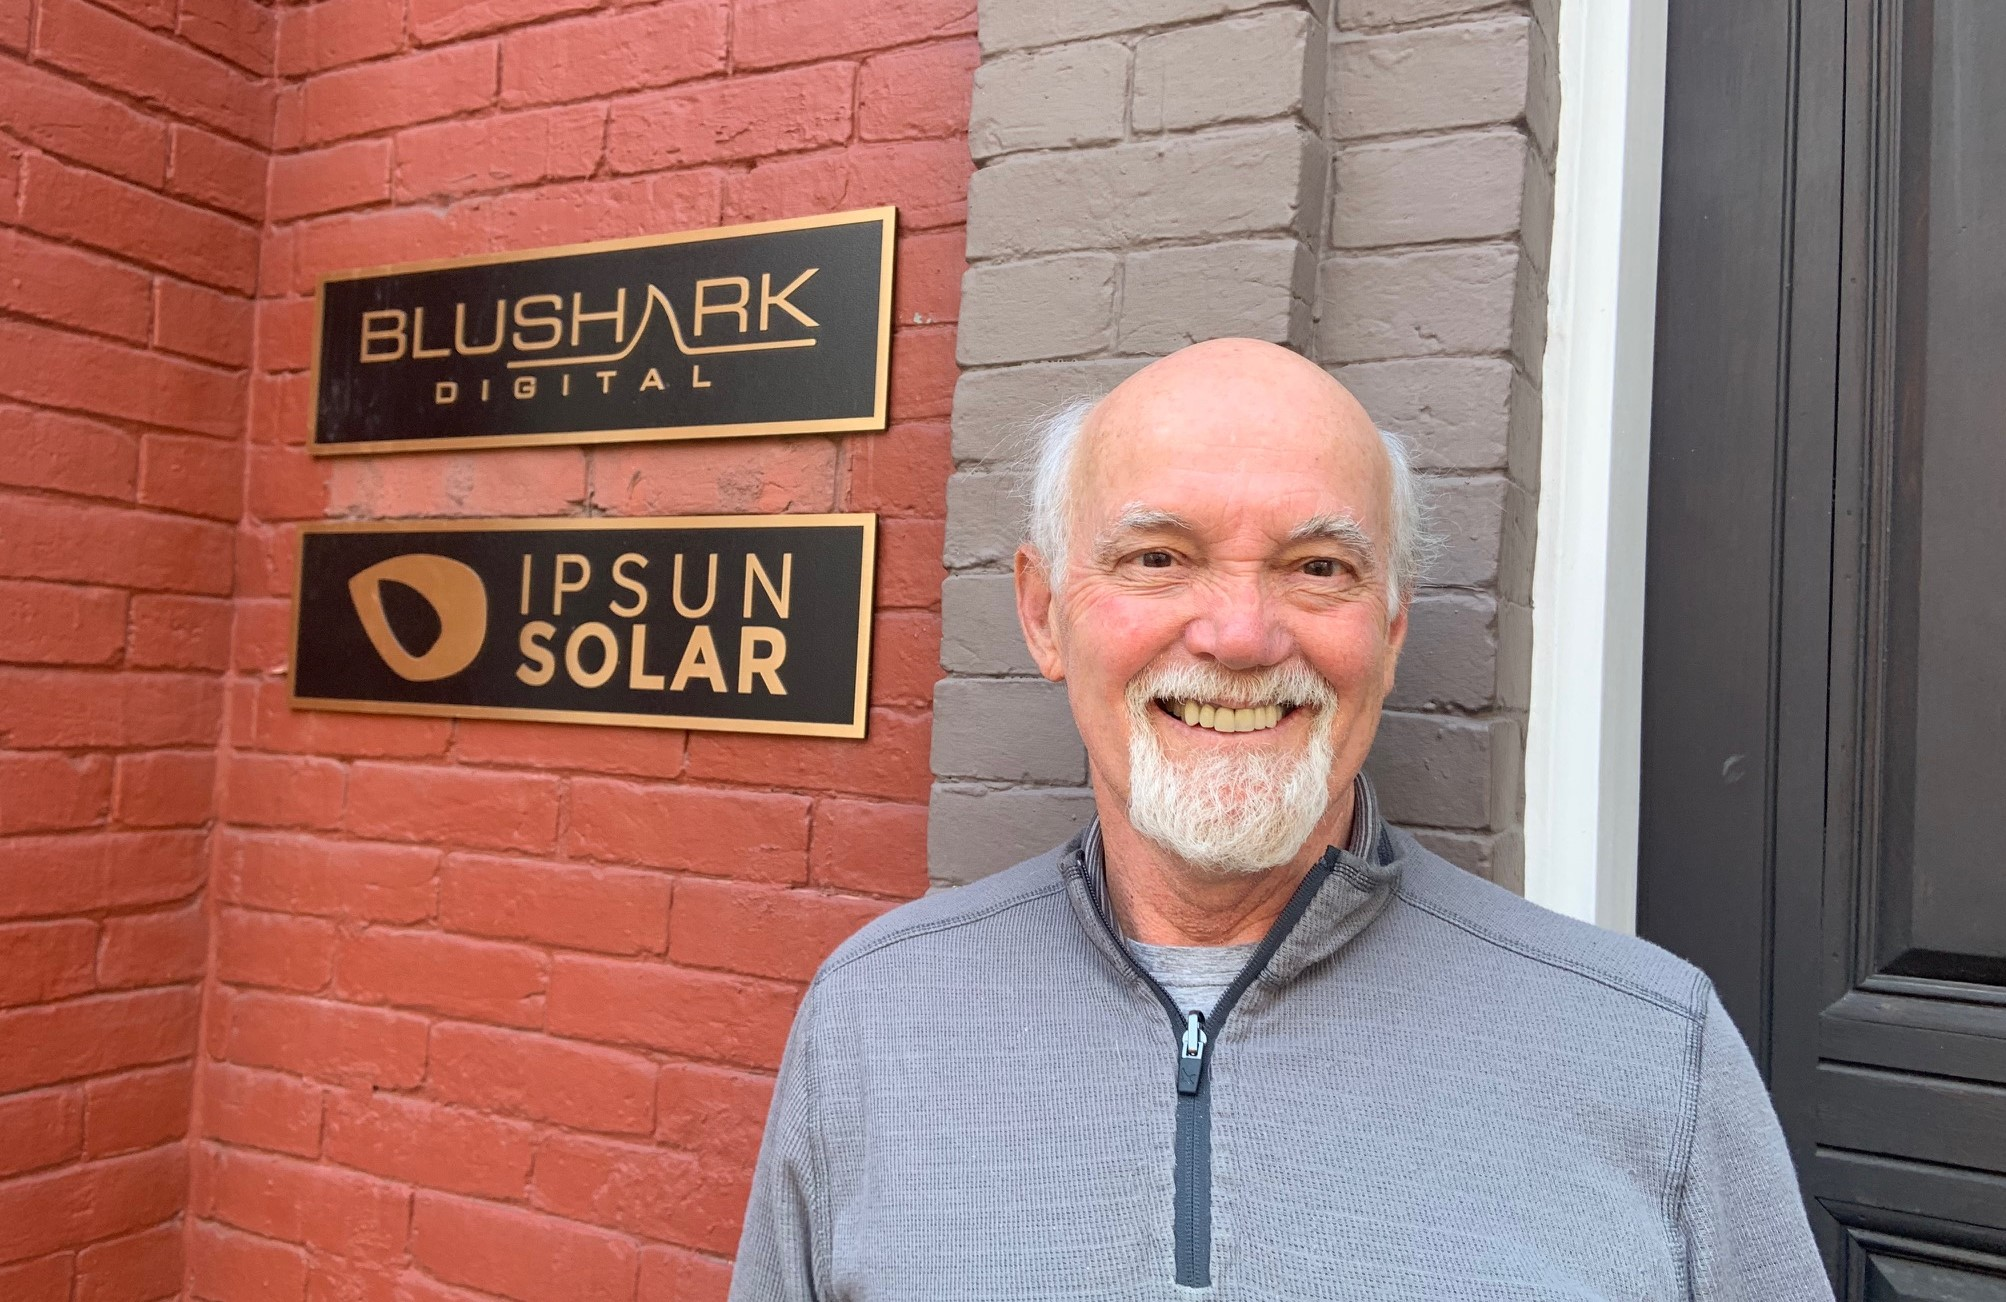 Ipsun Solar Goes All In on Solar Policy Advocacy With Addition of Former General Counsel to Inspector General of EPA